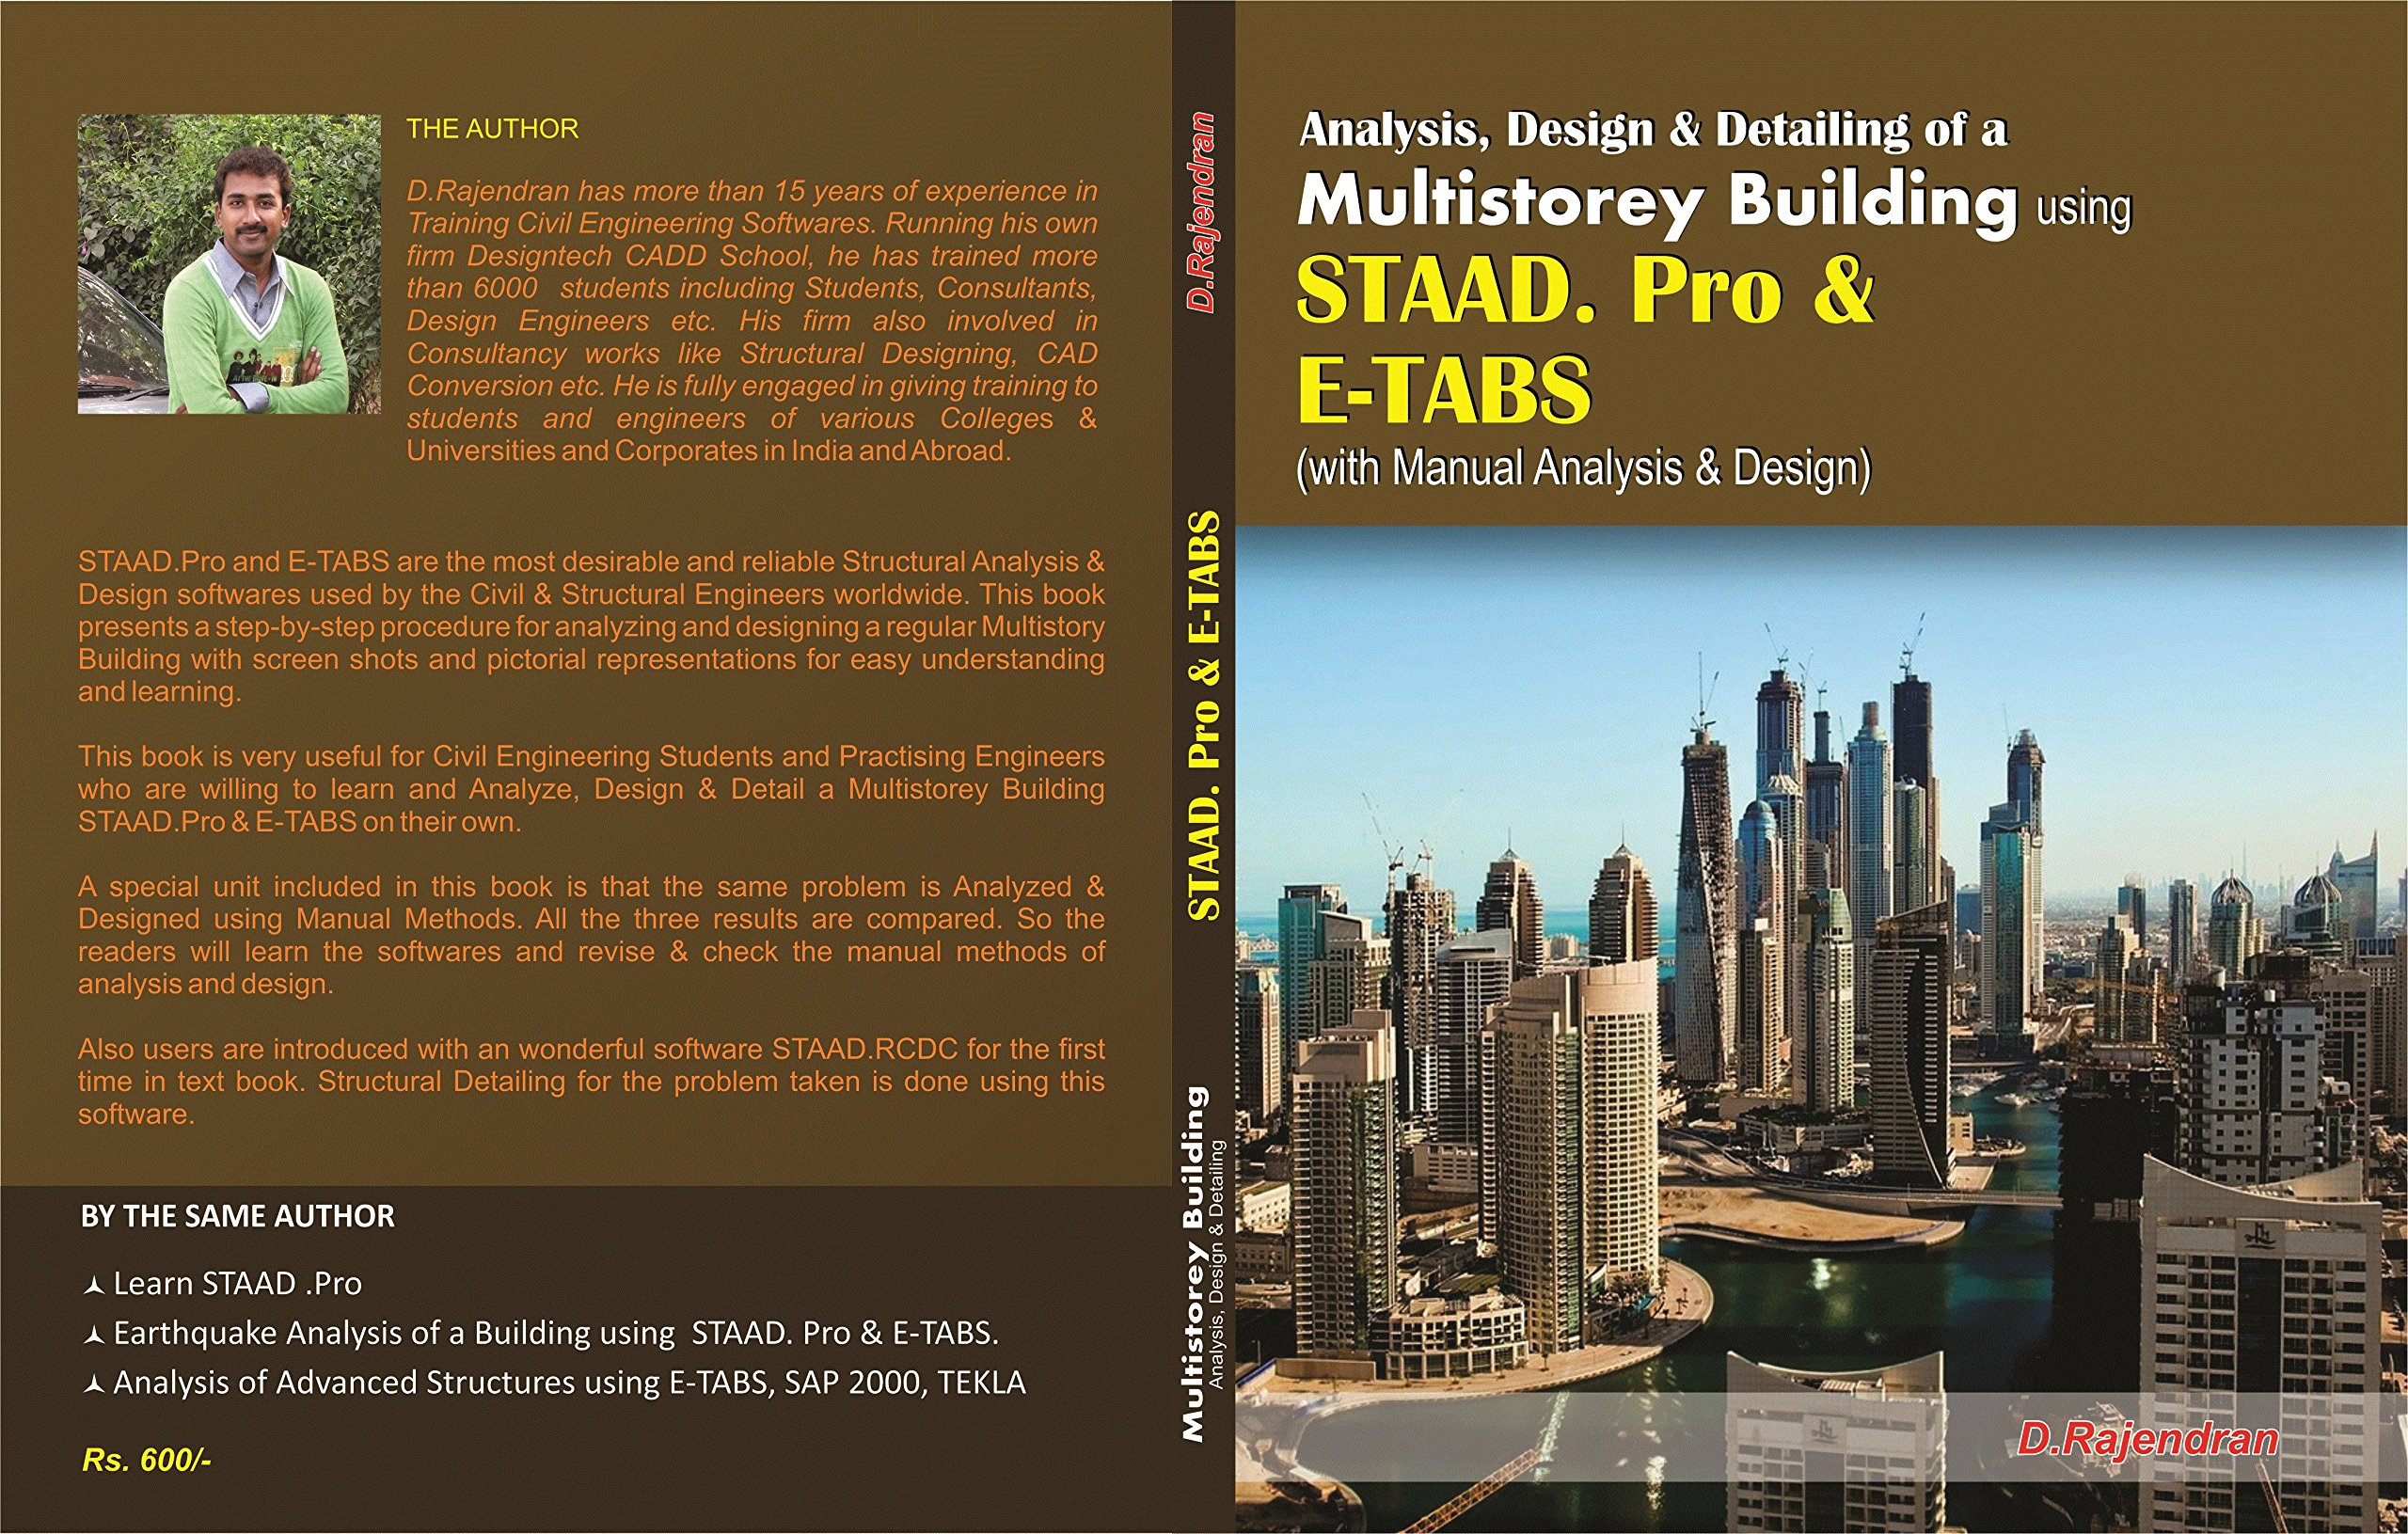 Buy Analysis Design Of A Multistorey Building Using Staad Pro E Tabs With Manual Calculation First Edition 2016 Book Online At Low Prices In India Analysis Design Of A